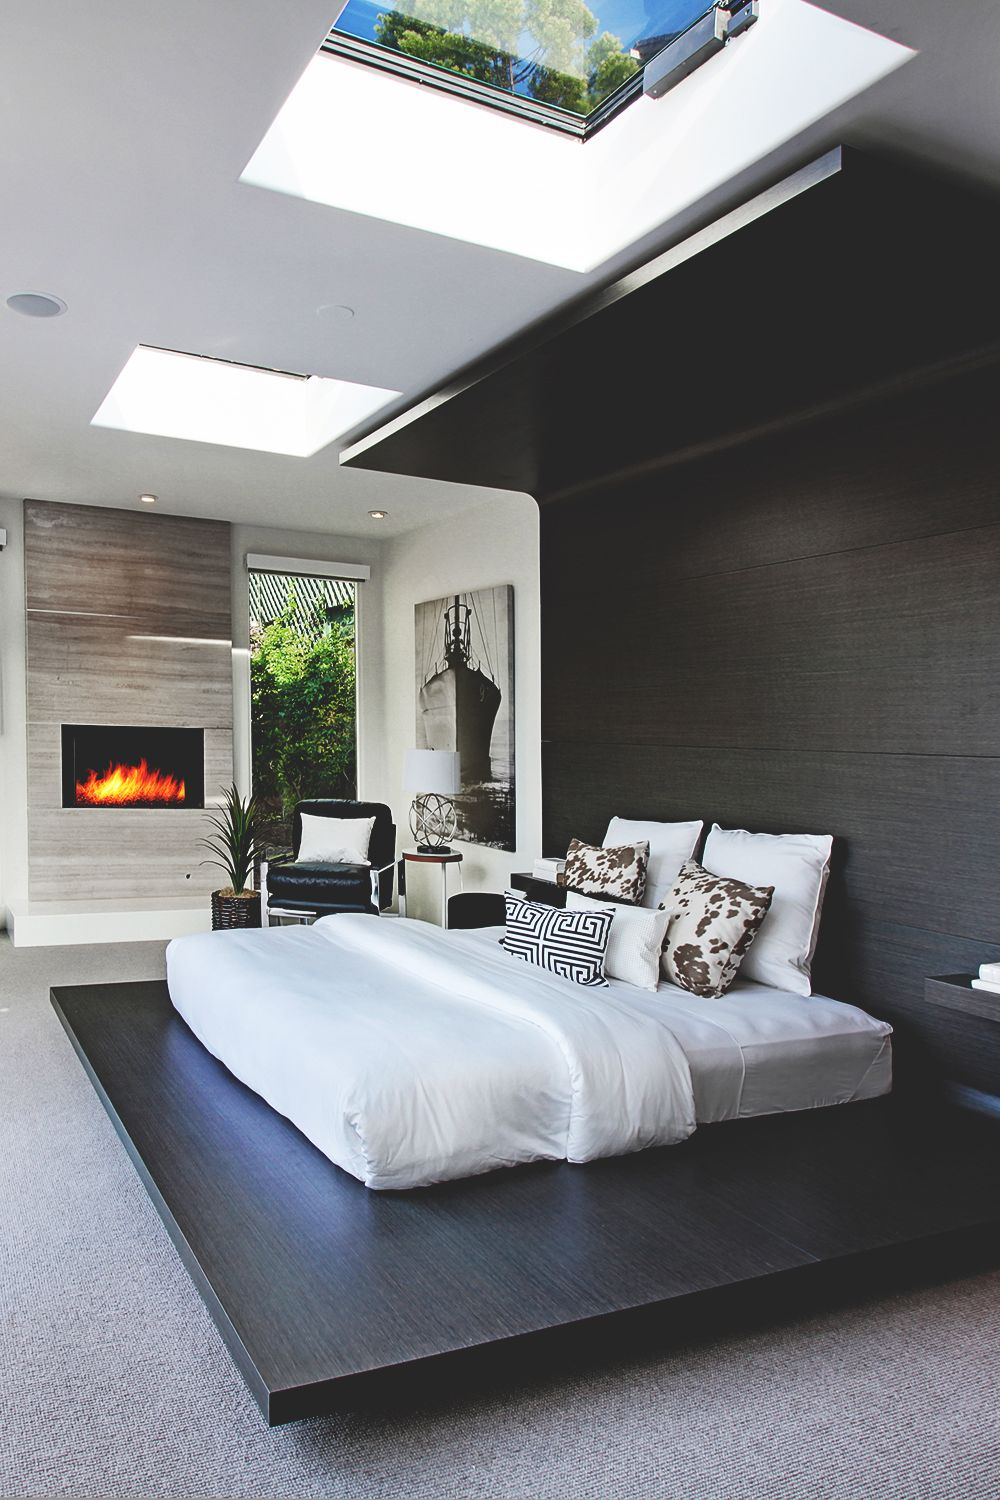 Awesome giant skylights in the bedroom - Inspiring Examples Of Minimal  Interior Design 5 - UltraLinx